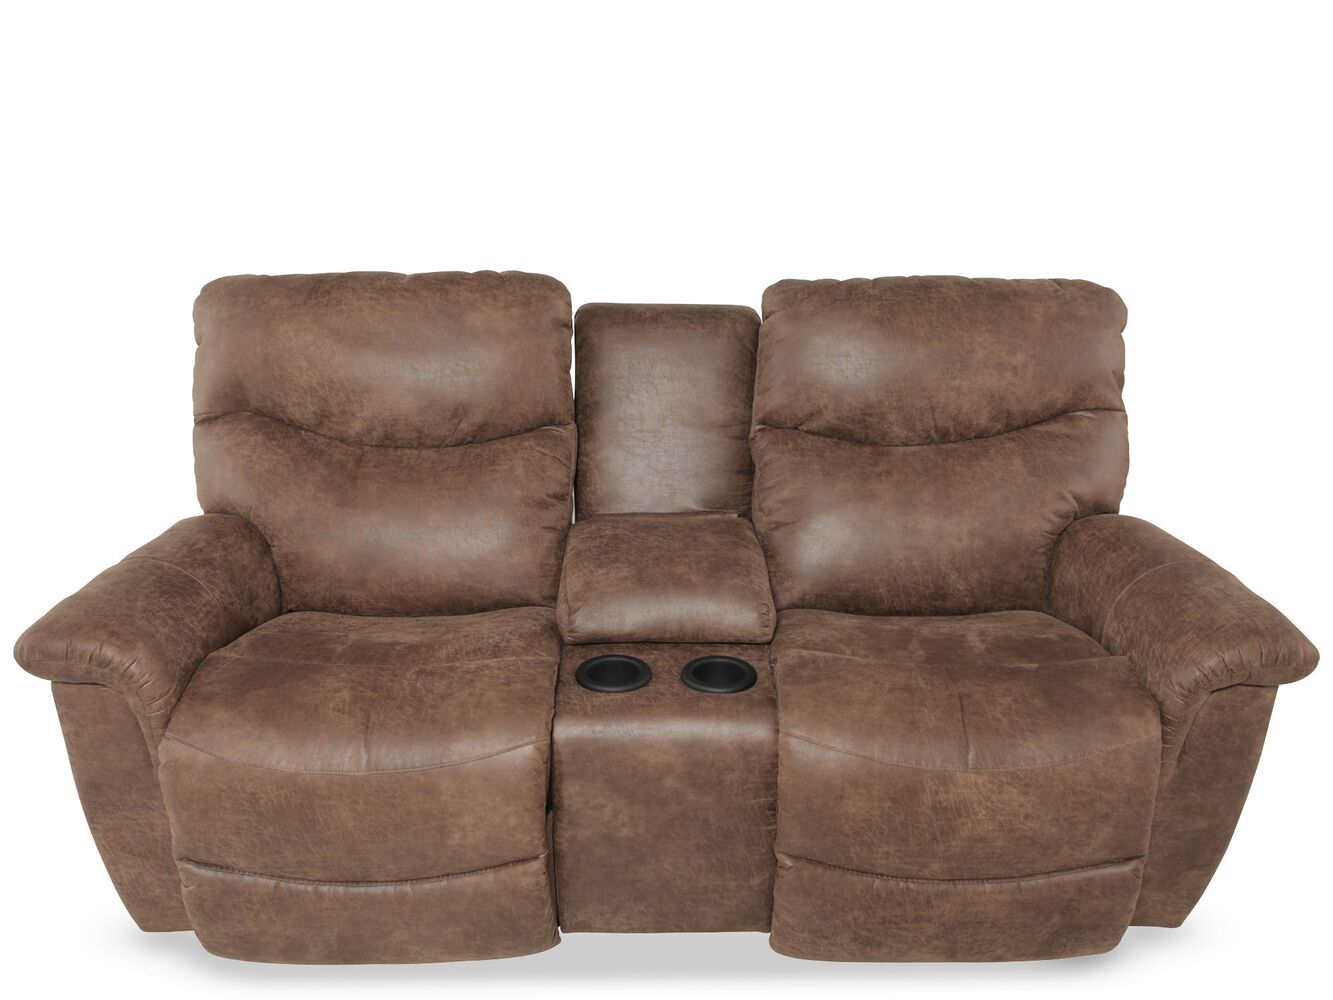 Leather recliners lazy boy - Double Recliner La Z Boy Mathis Brothers